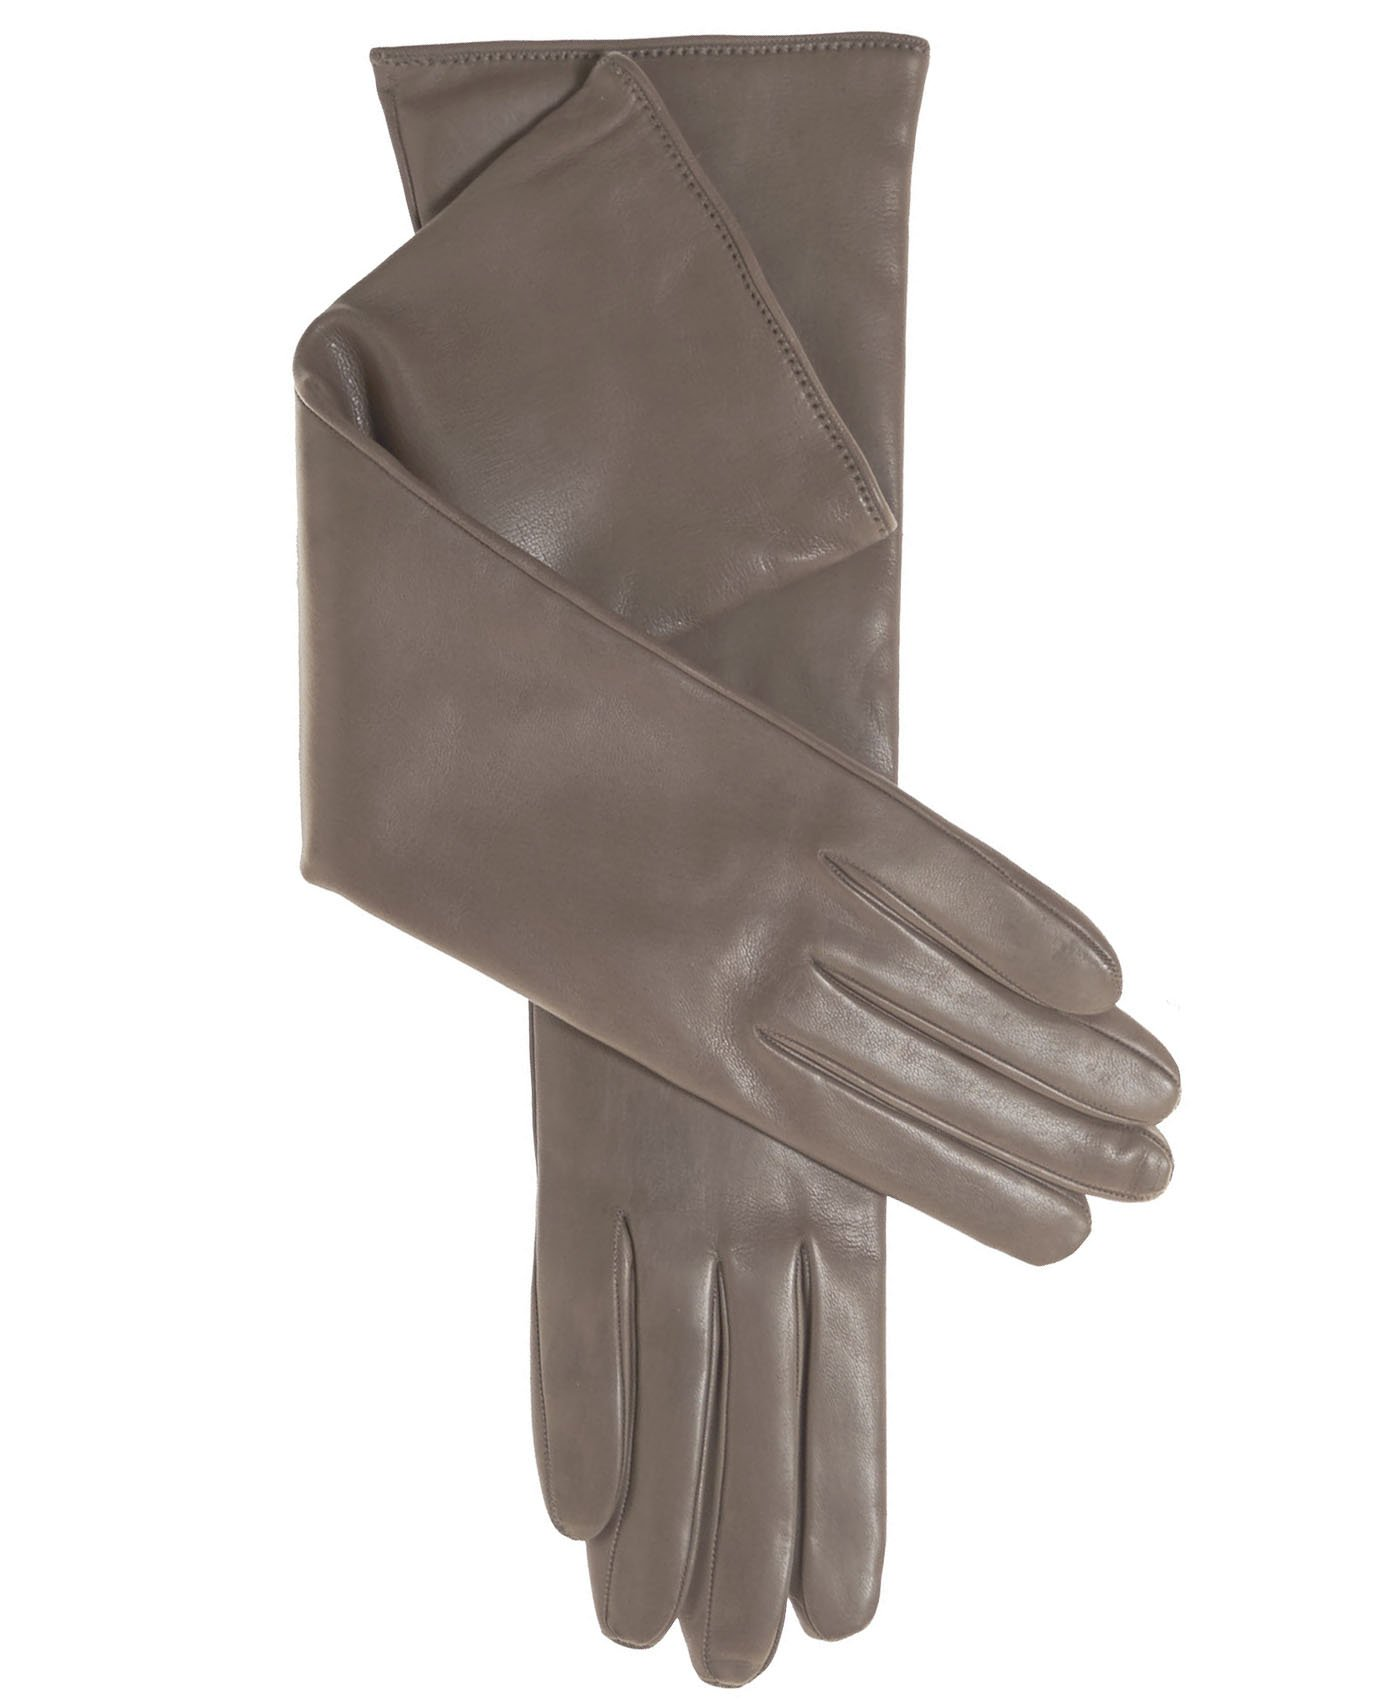 Fratelli Orsini Women's Italian''8 Button Length'' Cashmere Lined Leather Gloves Size 7 1/2 Color Taupe